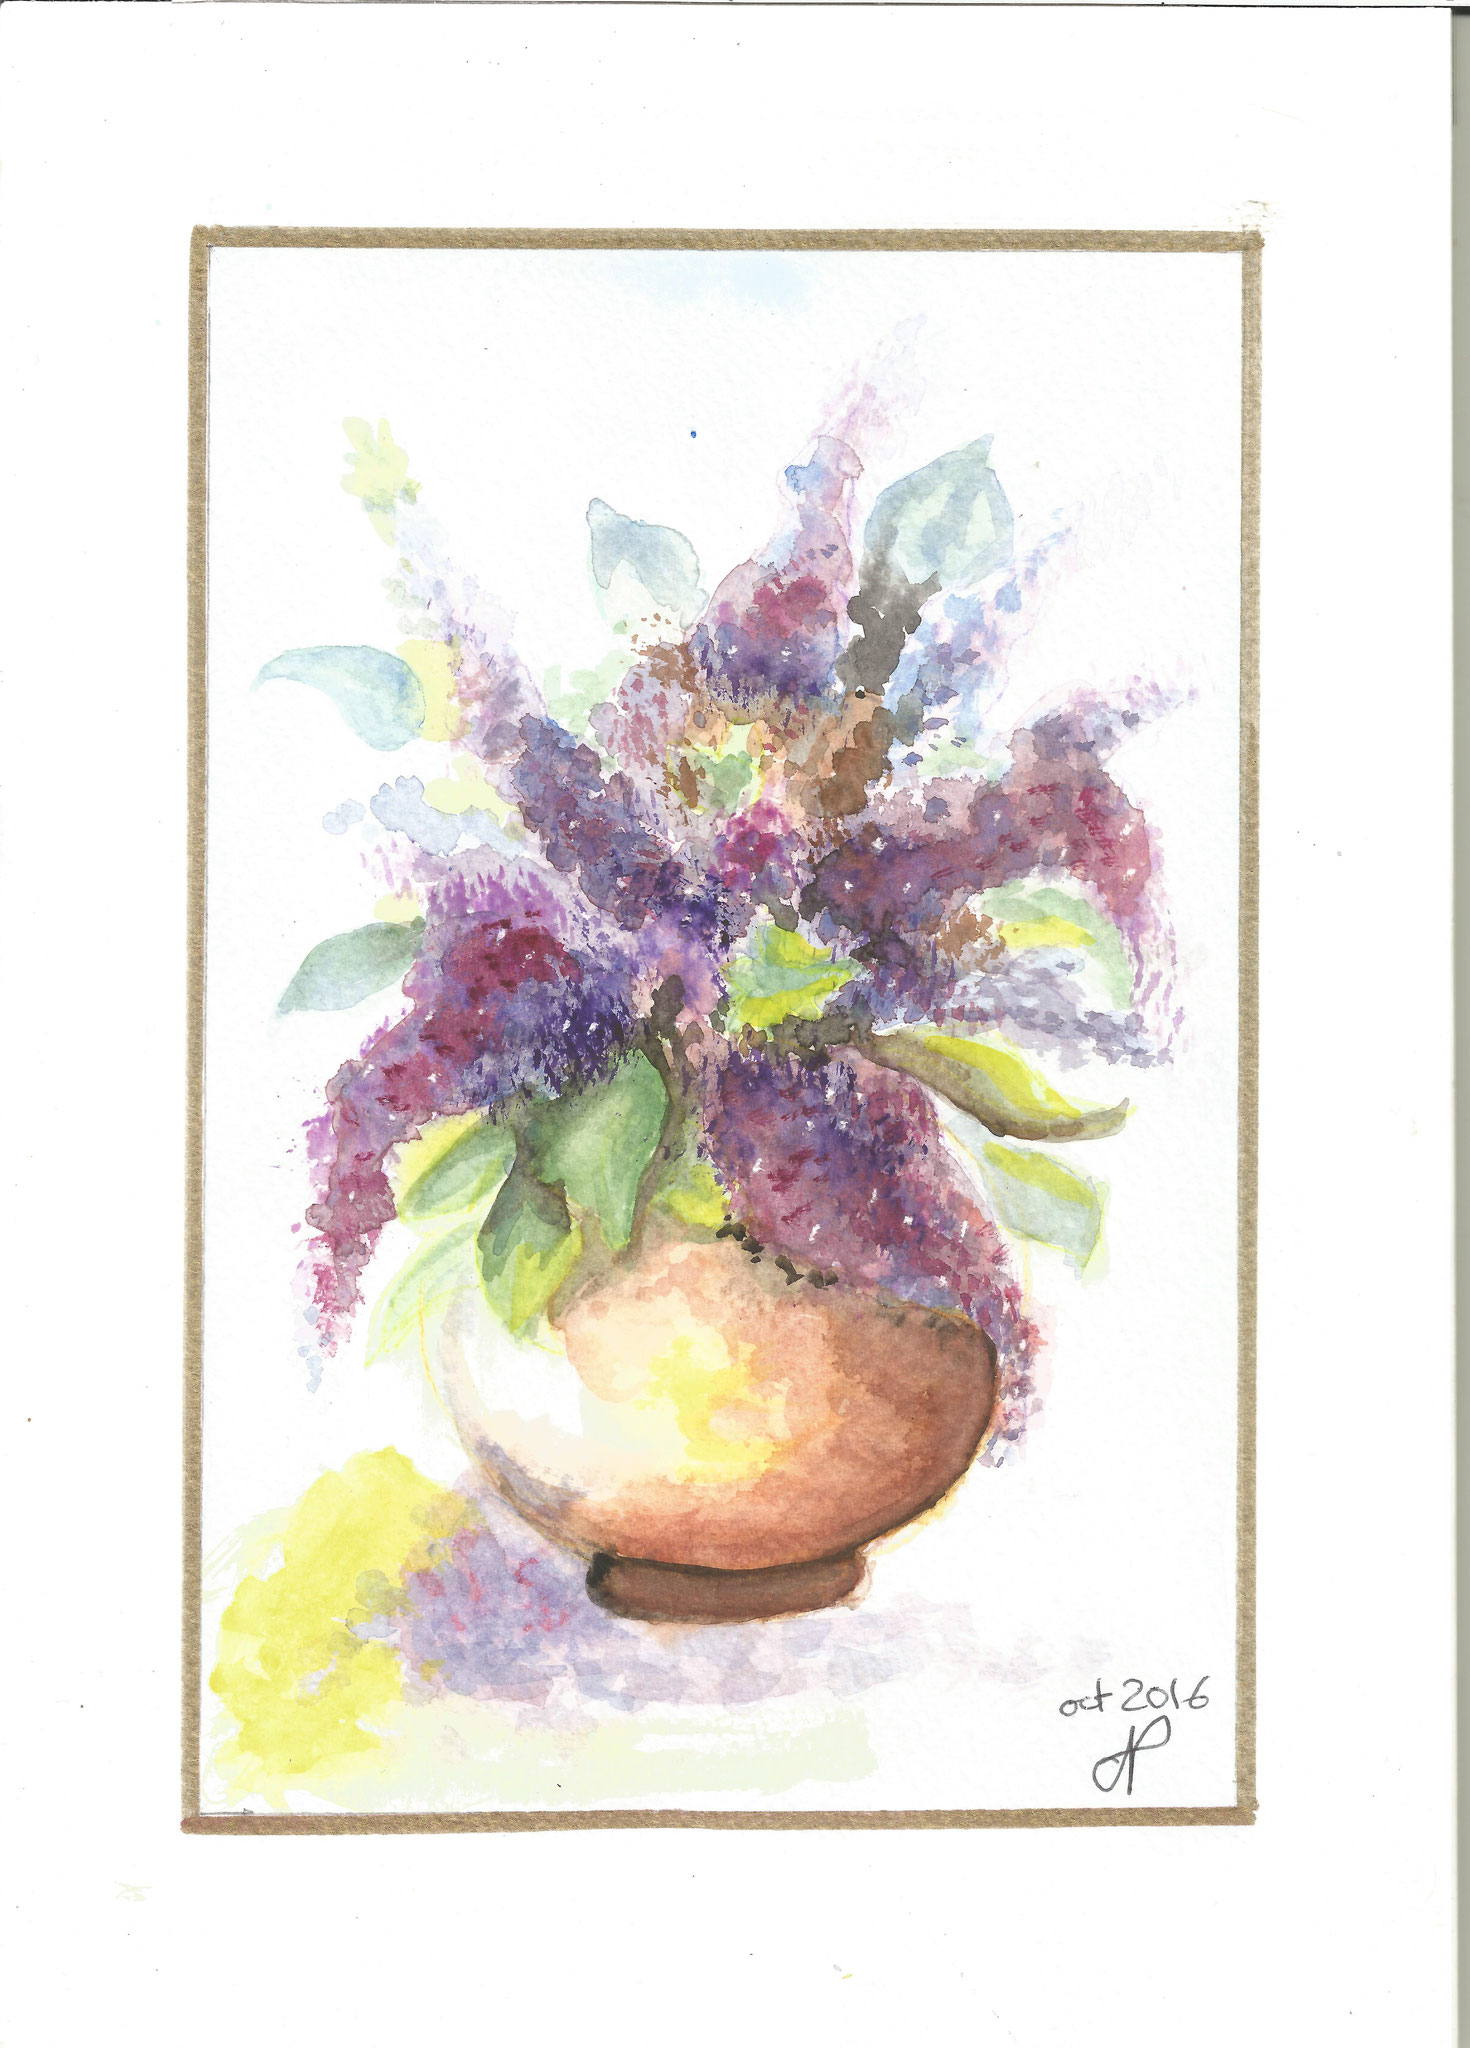 Bouquet mauve aquarelle oct 2016 Janine